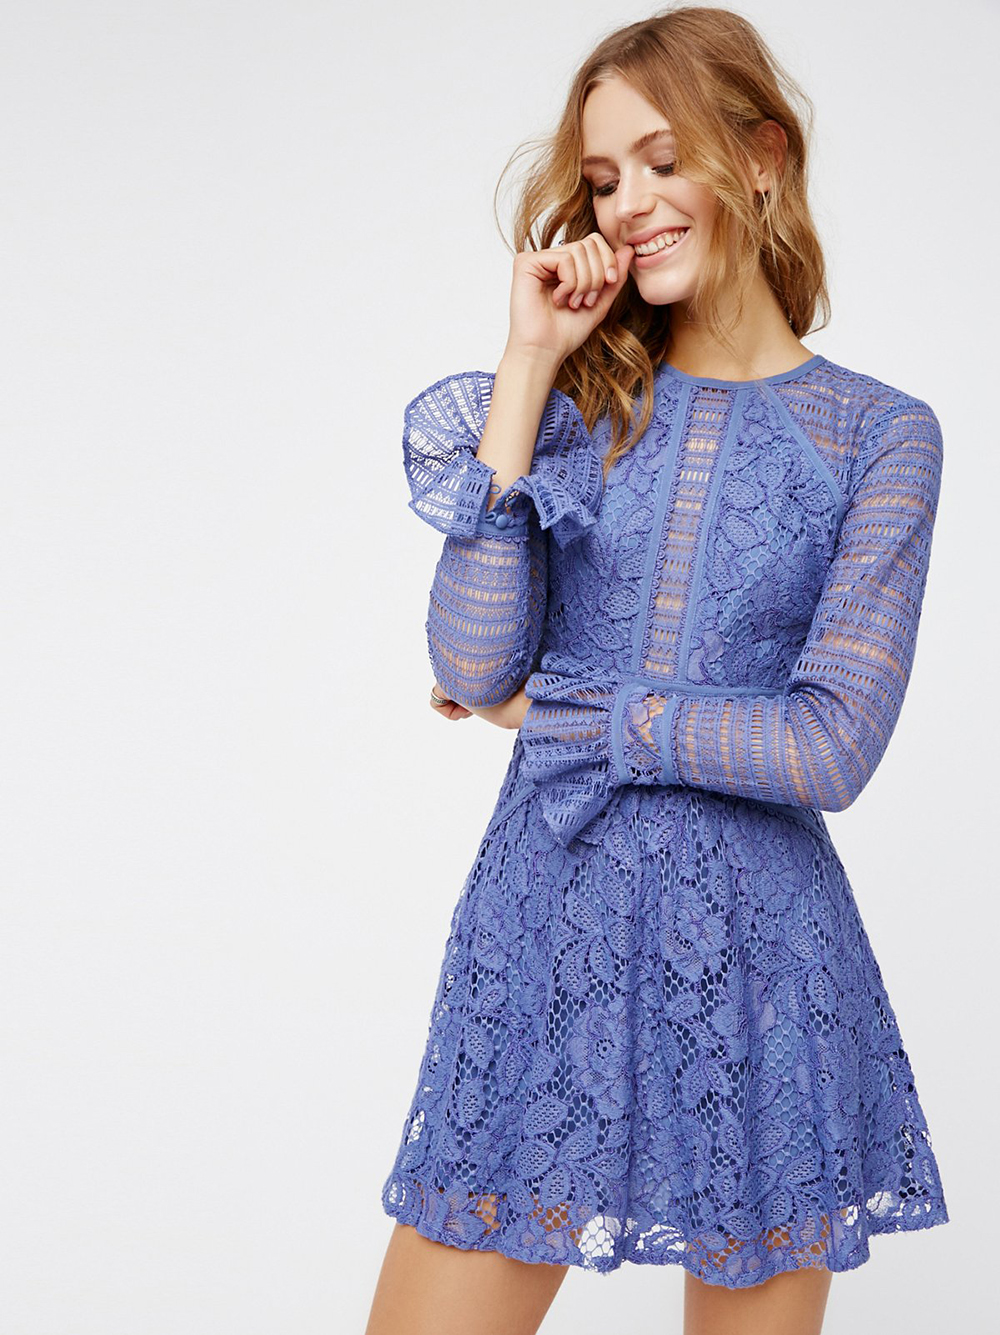 Free People Kiss And Tell Lace Mini - Unwrap These 10 Holiday Dresses